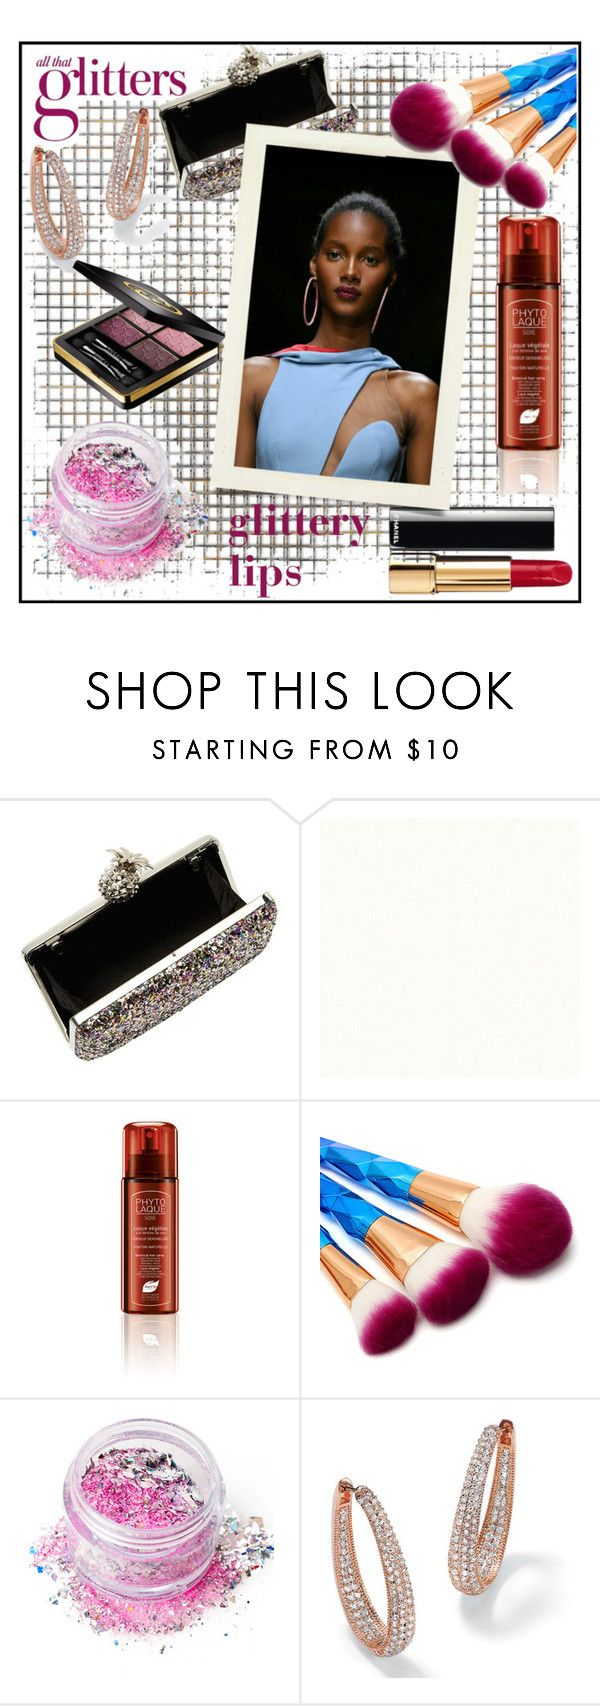 """""""GLITTERY LIPS!!!"""" by kskafida ❤ liked on Polyvore featuring beauty, Becca Cosmetics, Miss Selfridge, Phyto, In Your Dreams, Palm Beach Jewelry and Gucci"""